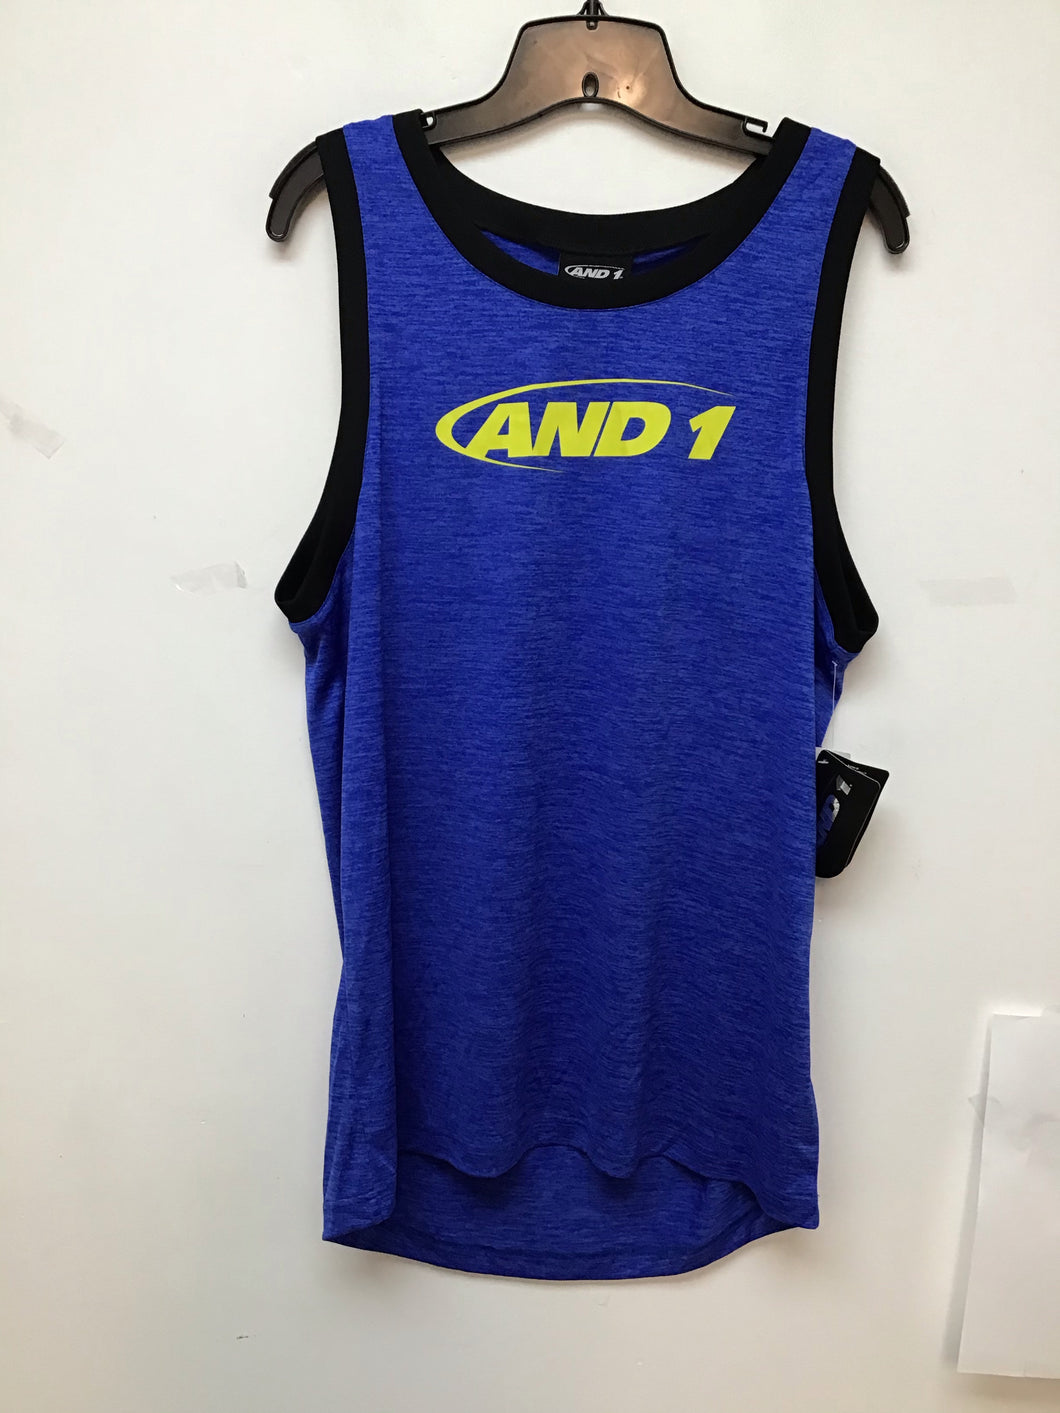 And 1 bully sleeveless top vital blue heather